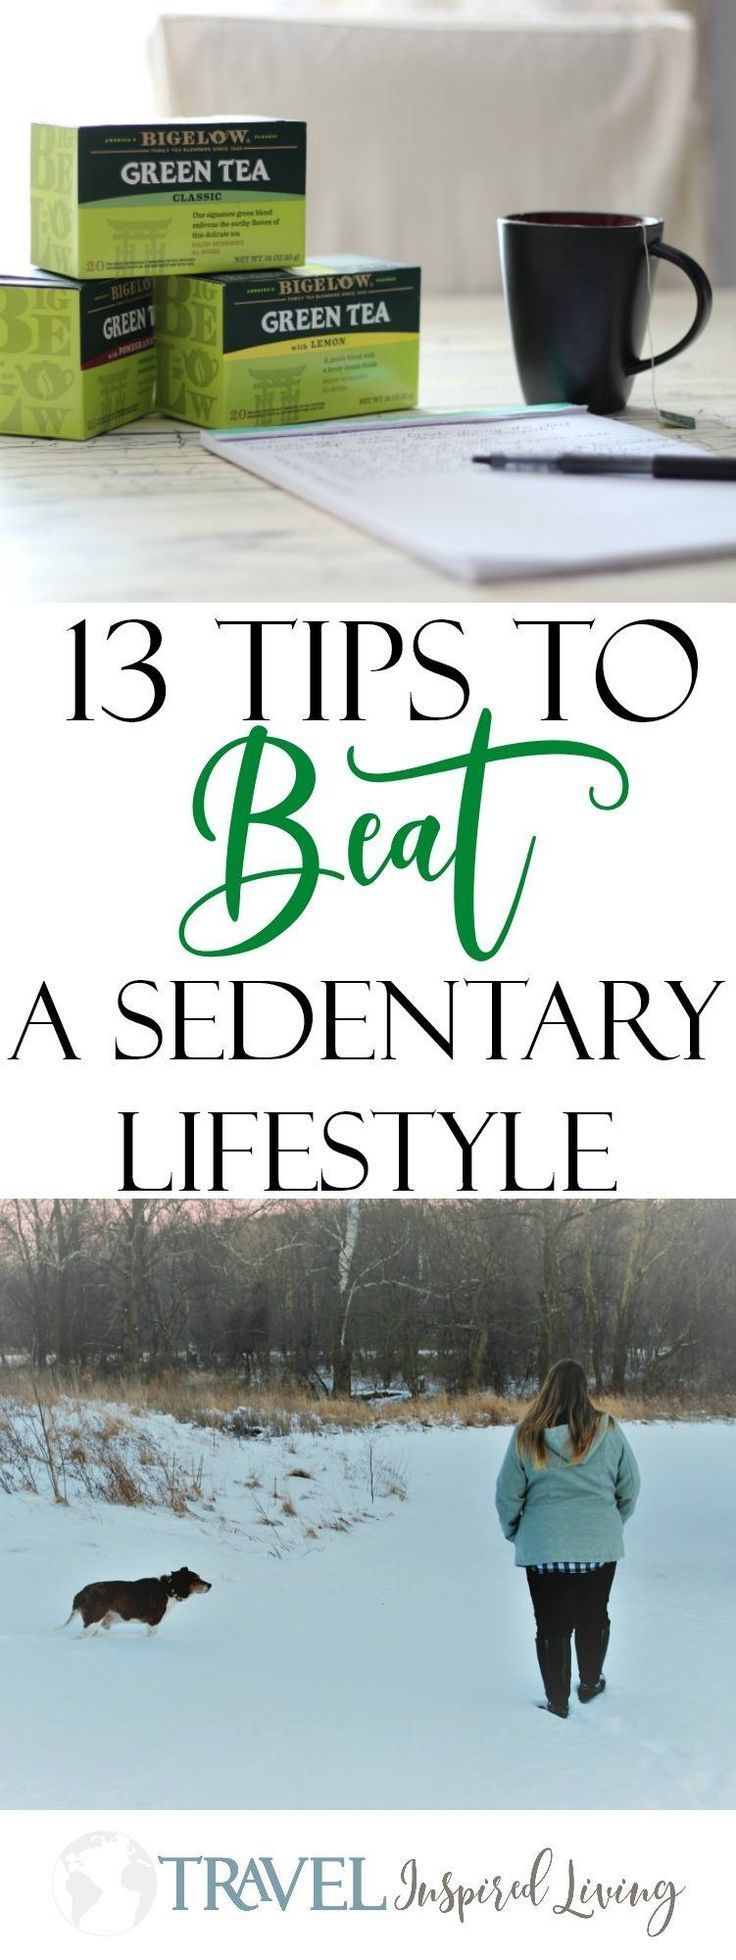 Start the New Year by planning a new you! Here are 13 tips to help you beat a sedentary lifestyle that starts with making a plan. #BigelowTea #TeaProudly #ad #healthy #living #active #lifestyle